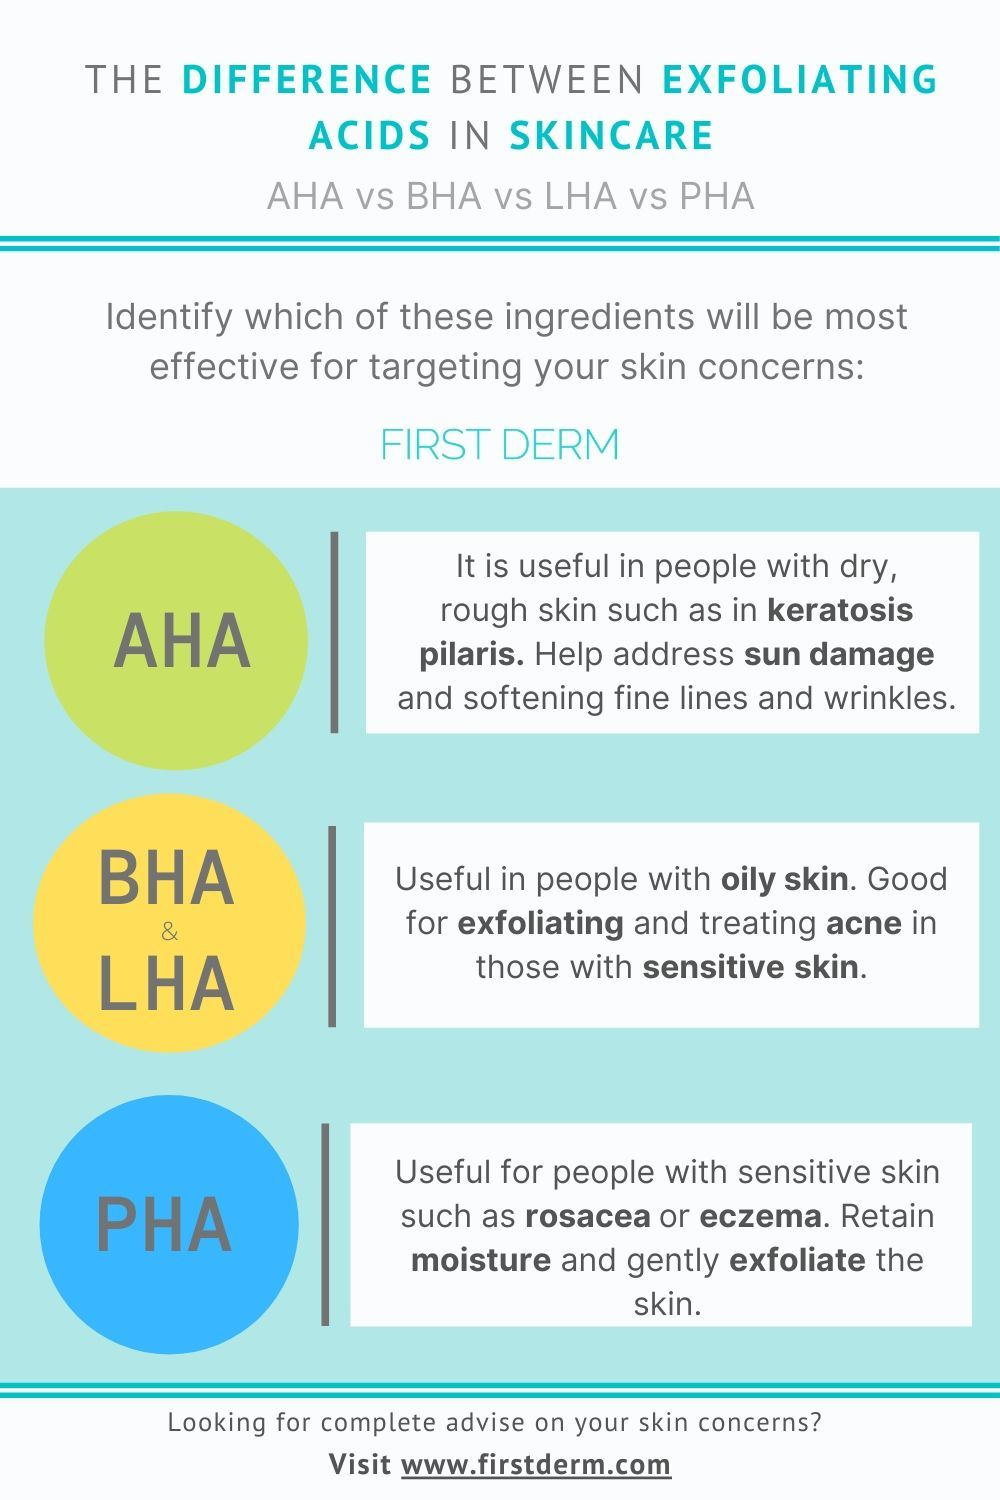 Aha Vs Bha Vs Lha Vs Pha The Difference Between Exfoliating Acids In Skincare Online Dermatology Bha Skincare Online Skin Care